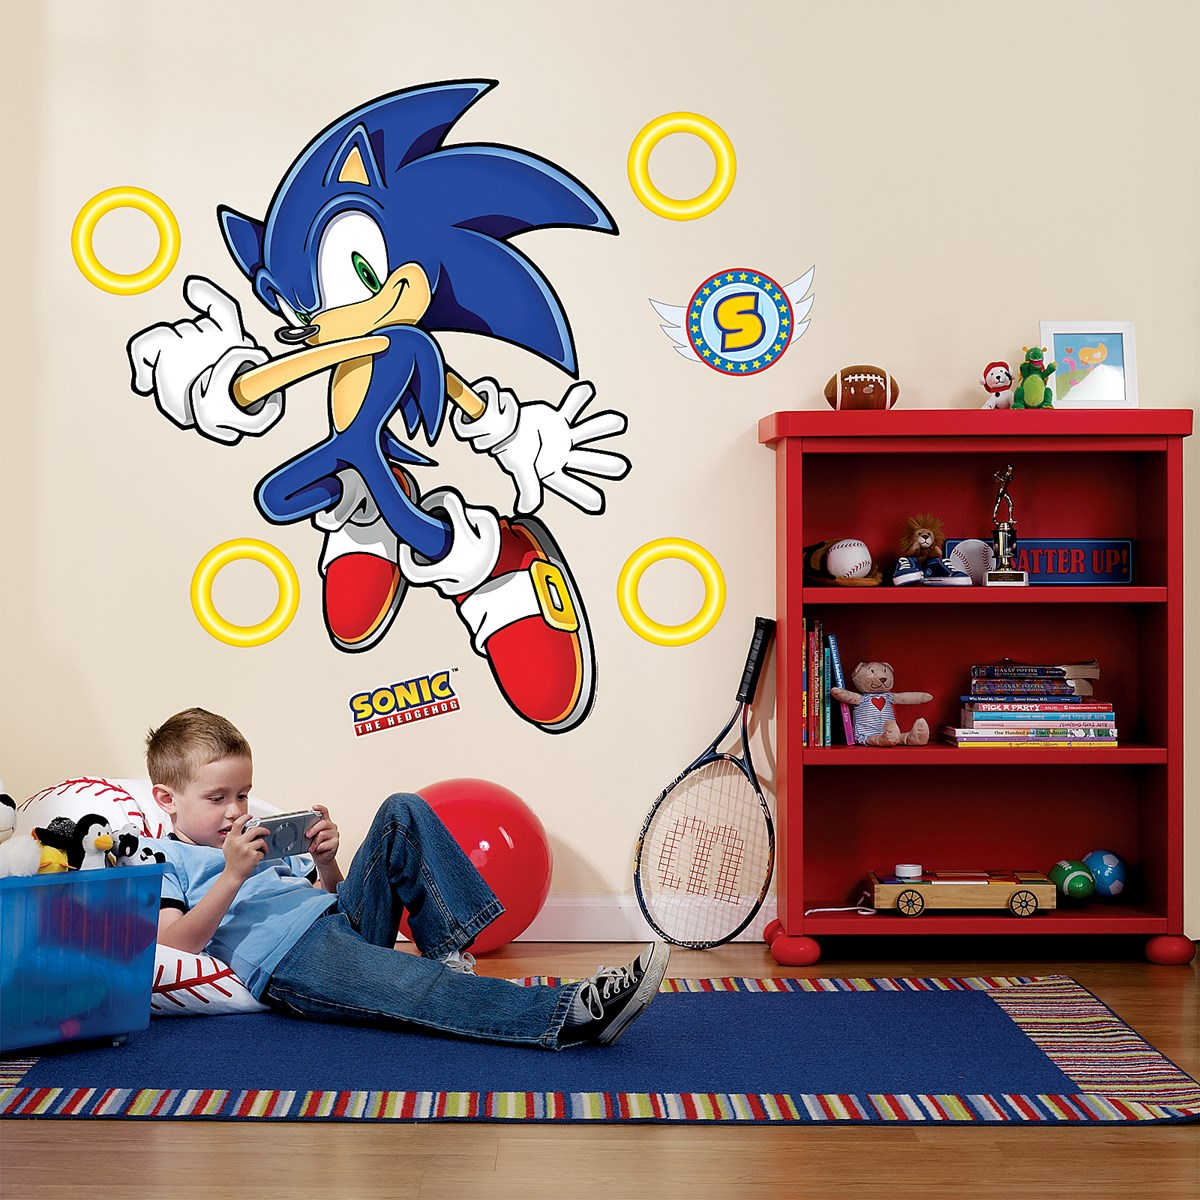 Sonic the hedgehog giant wall decals buycostumes amipublicfo Images